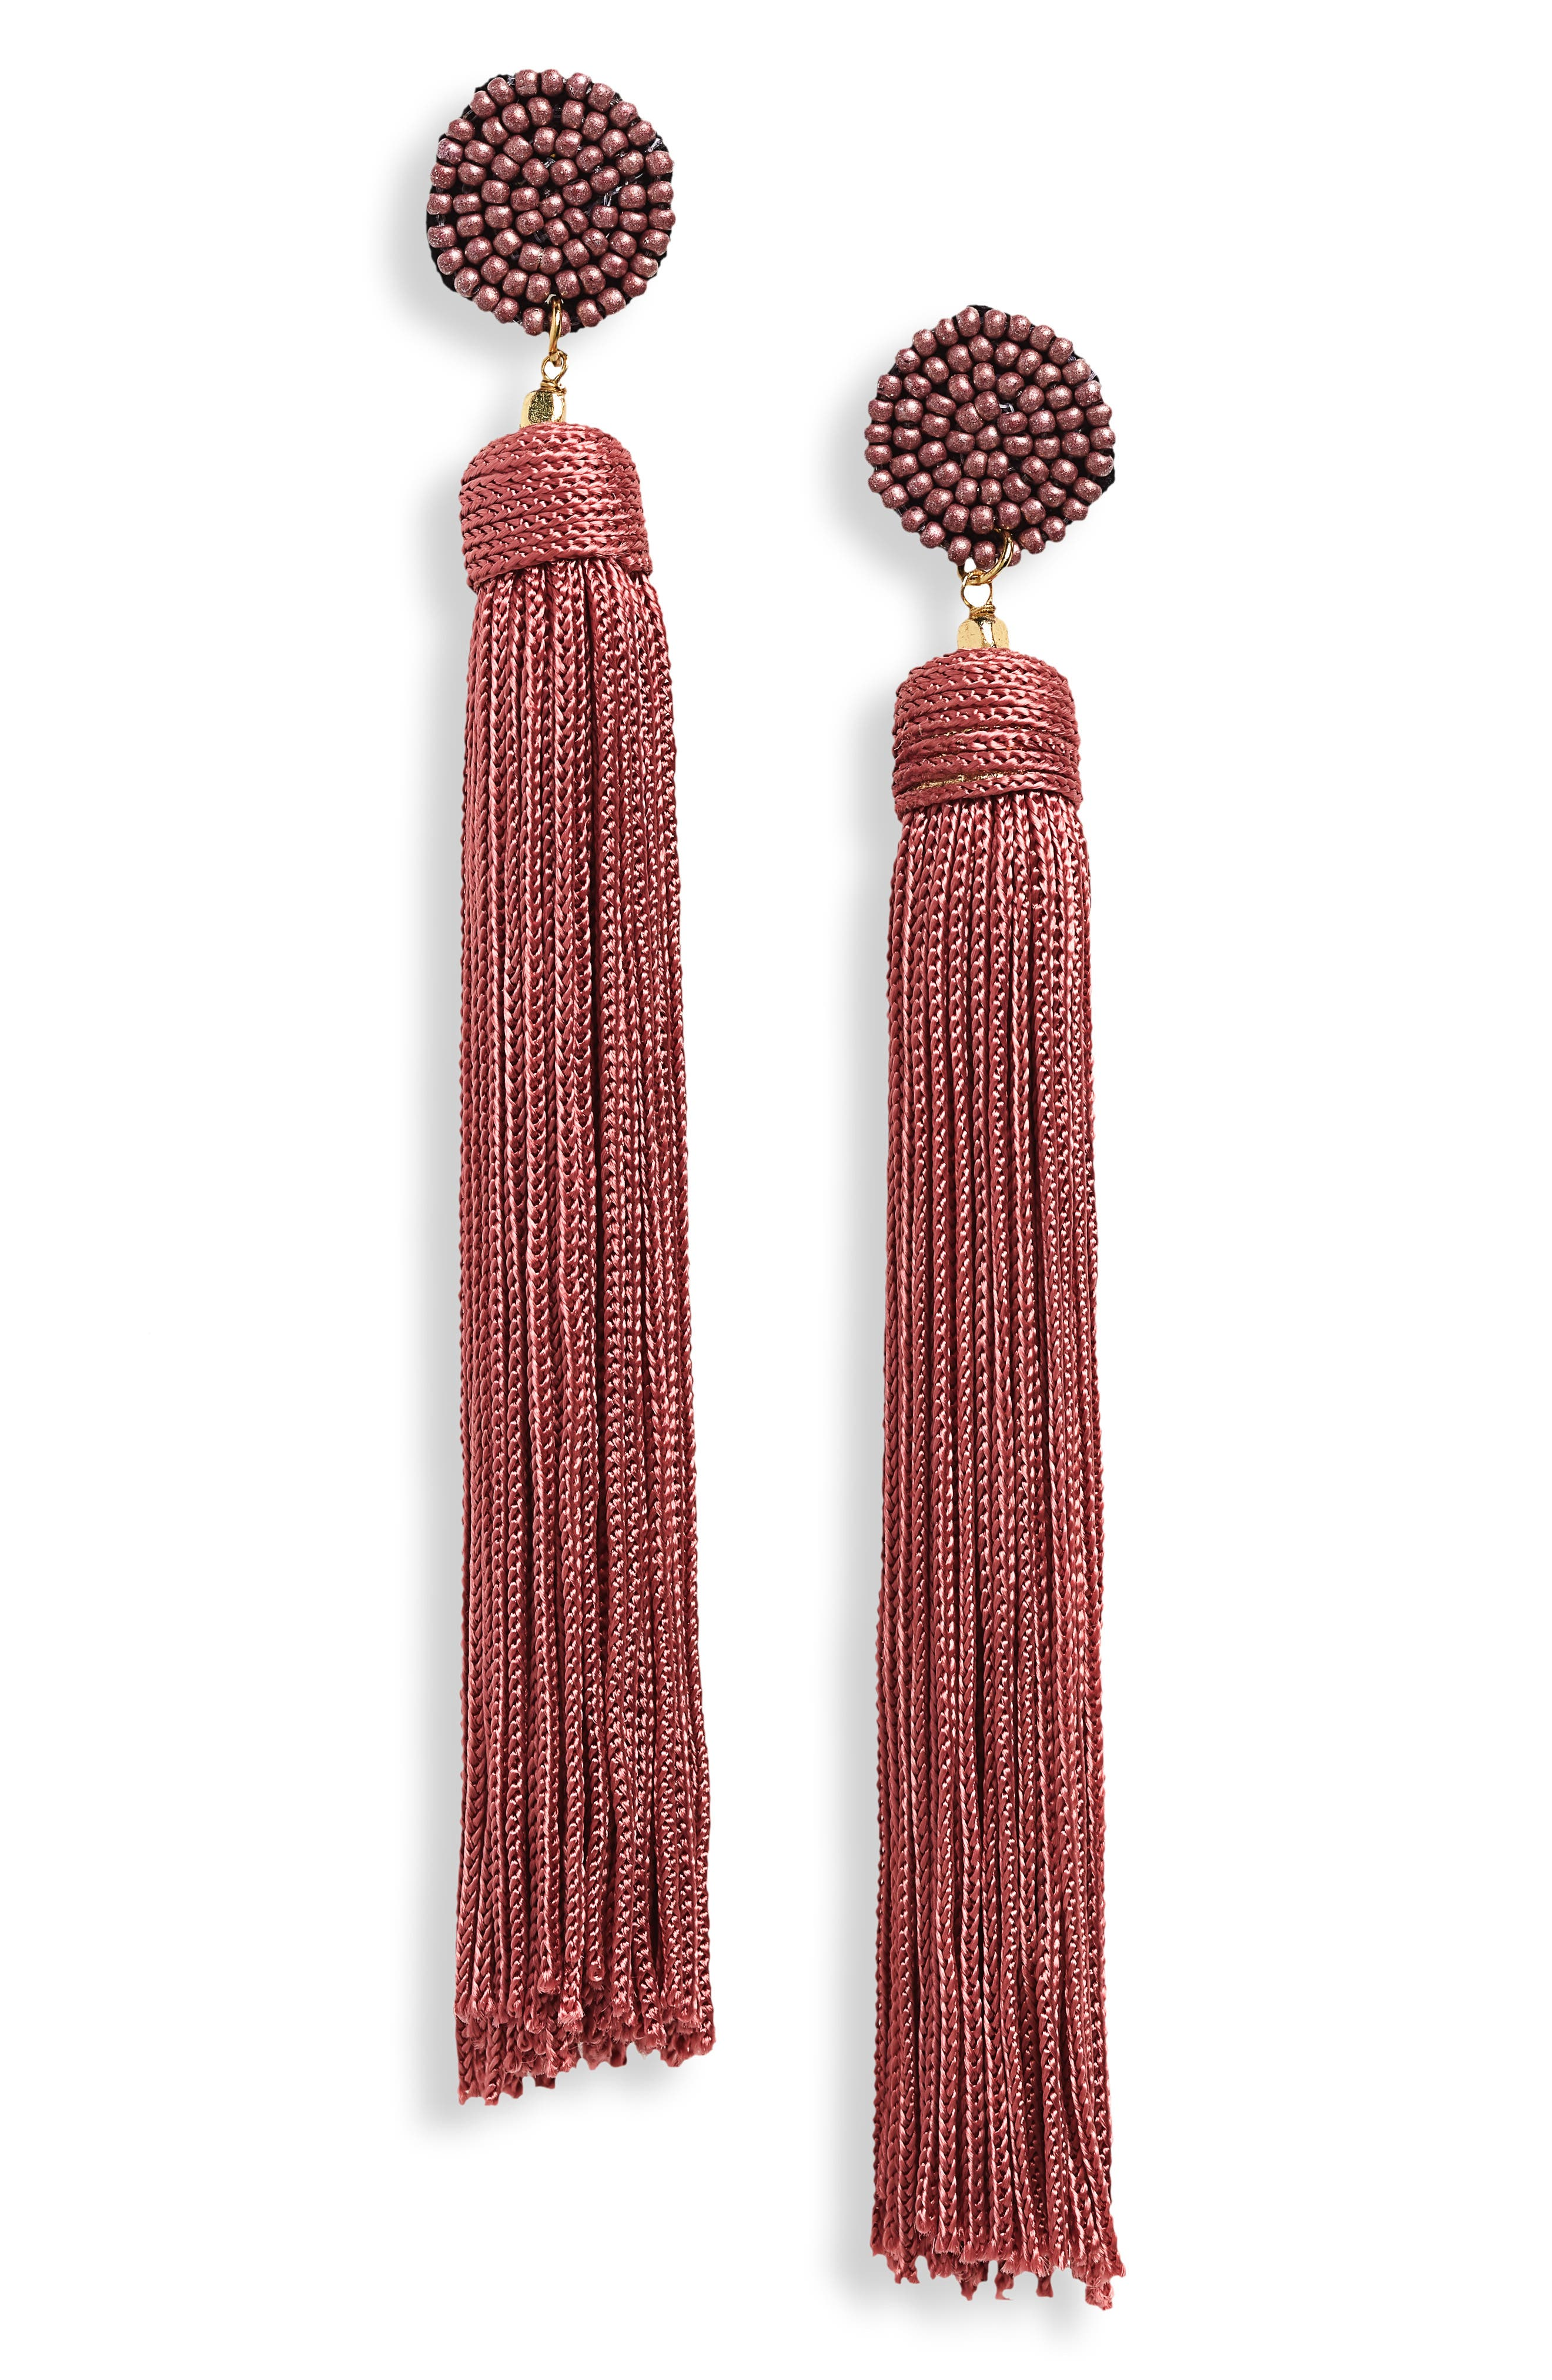 Nylon Tassel Earrings,                             Main thumbnail 1, color,                             Dusty Rose